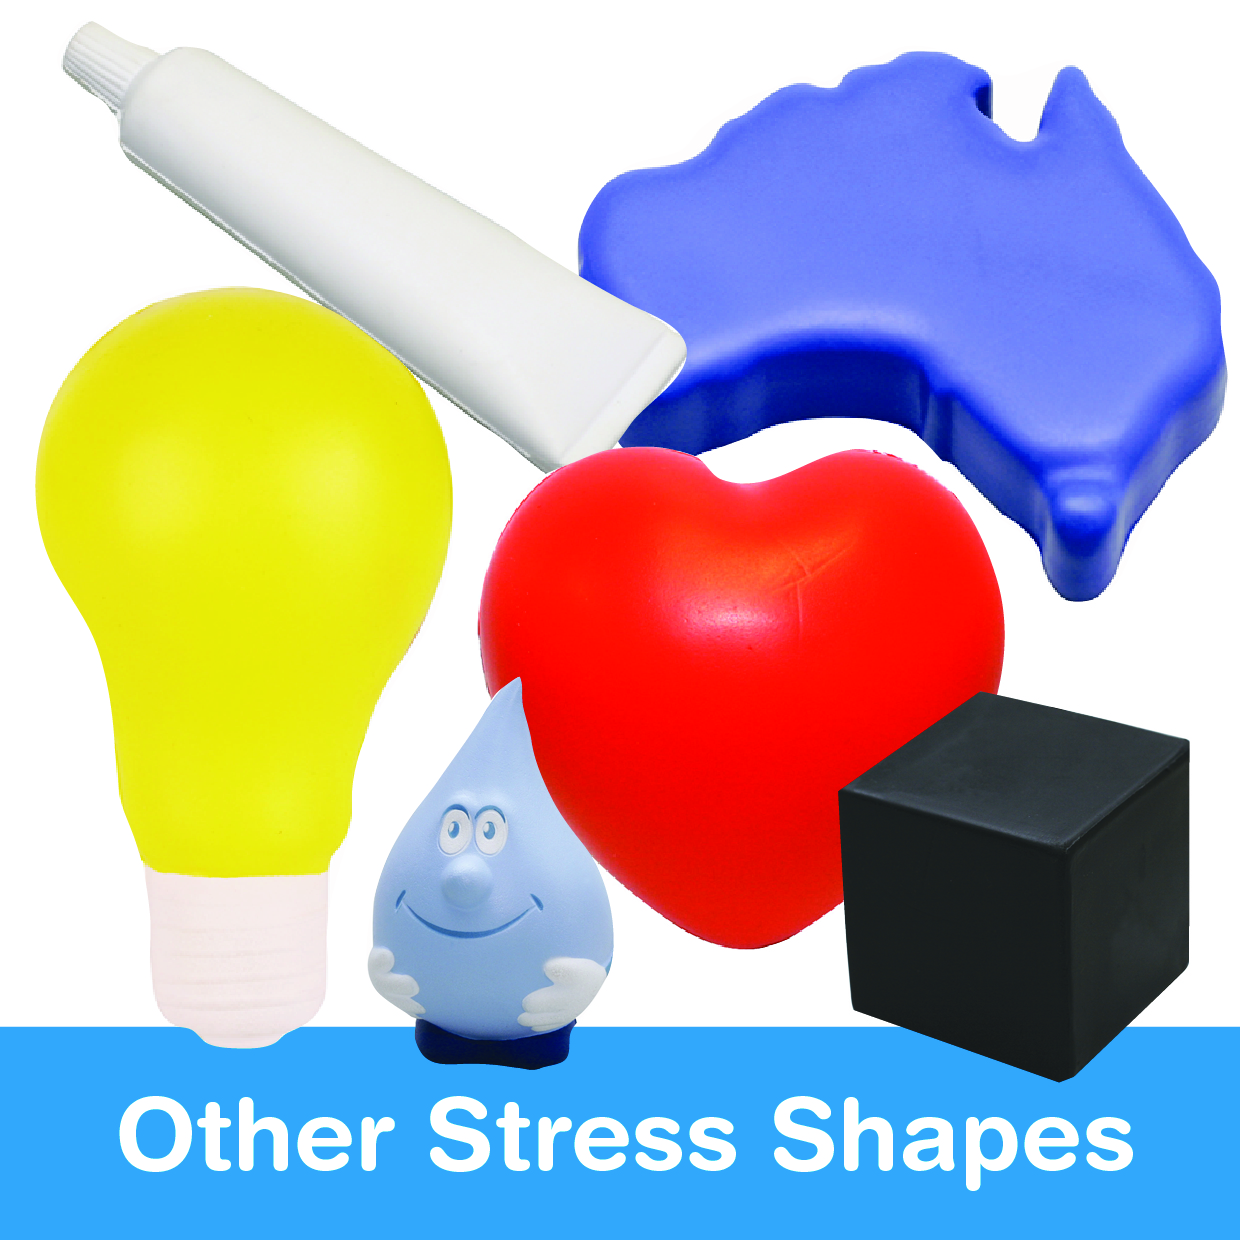 products/Stress Shapes Other.jpg